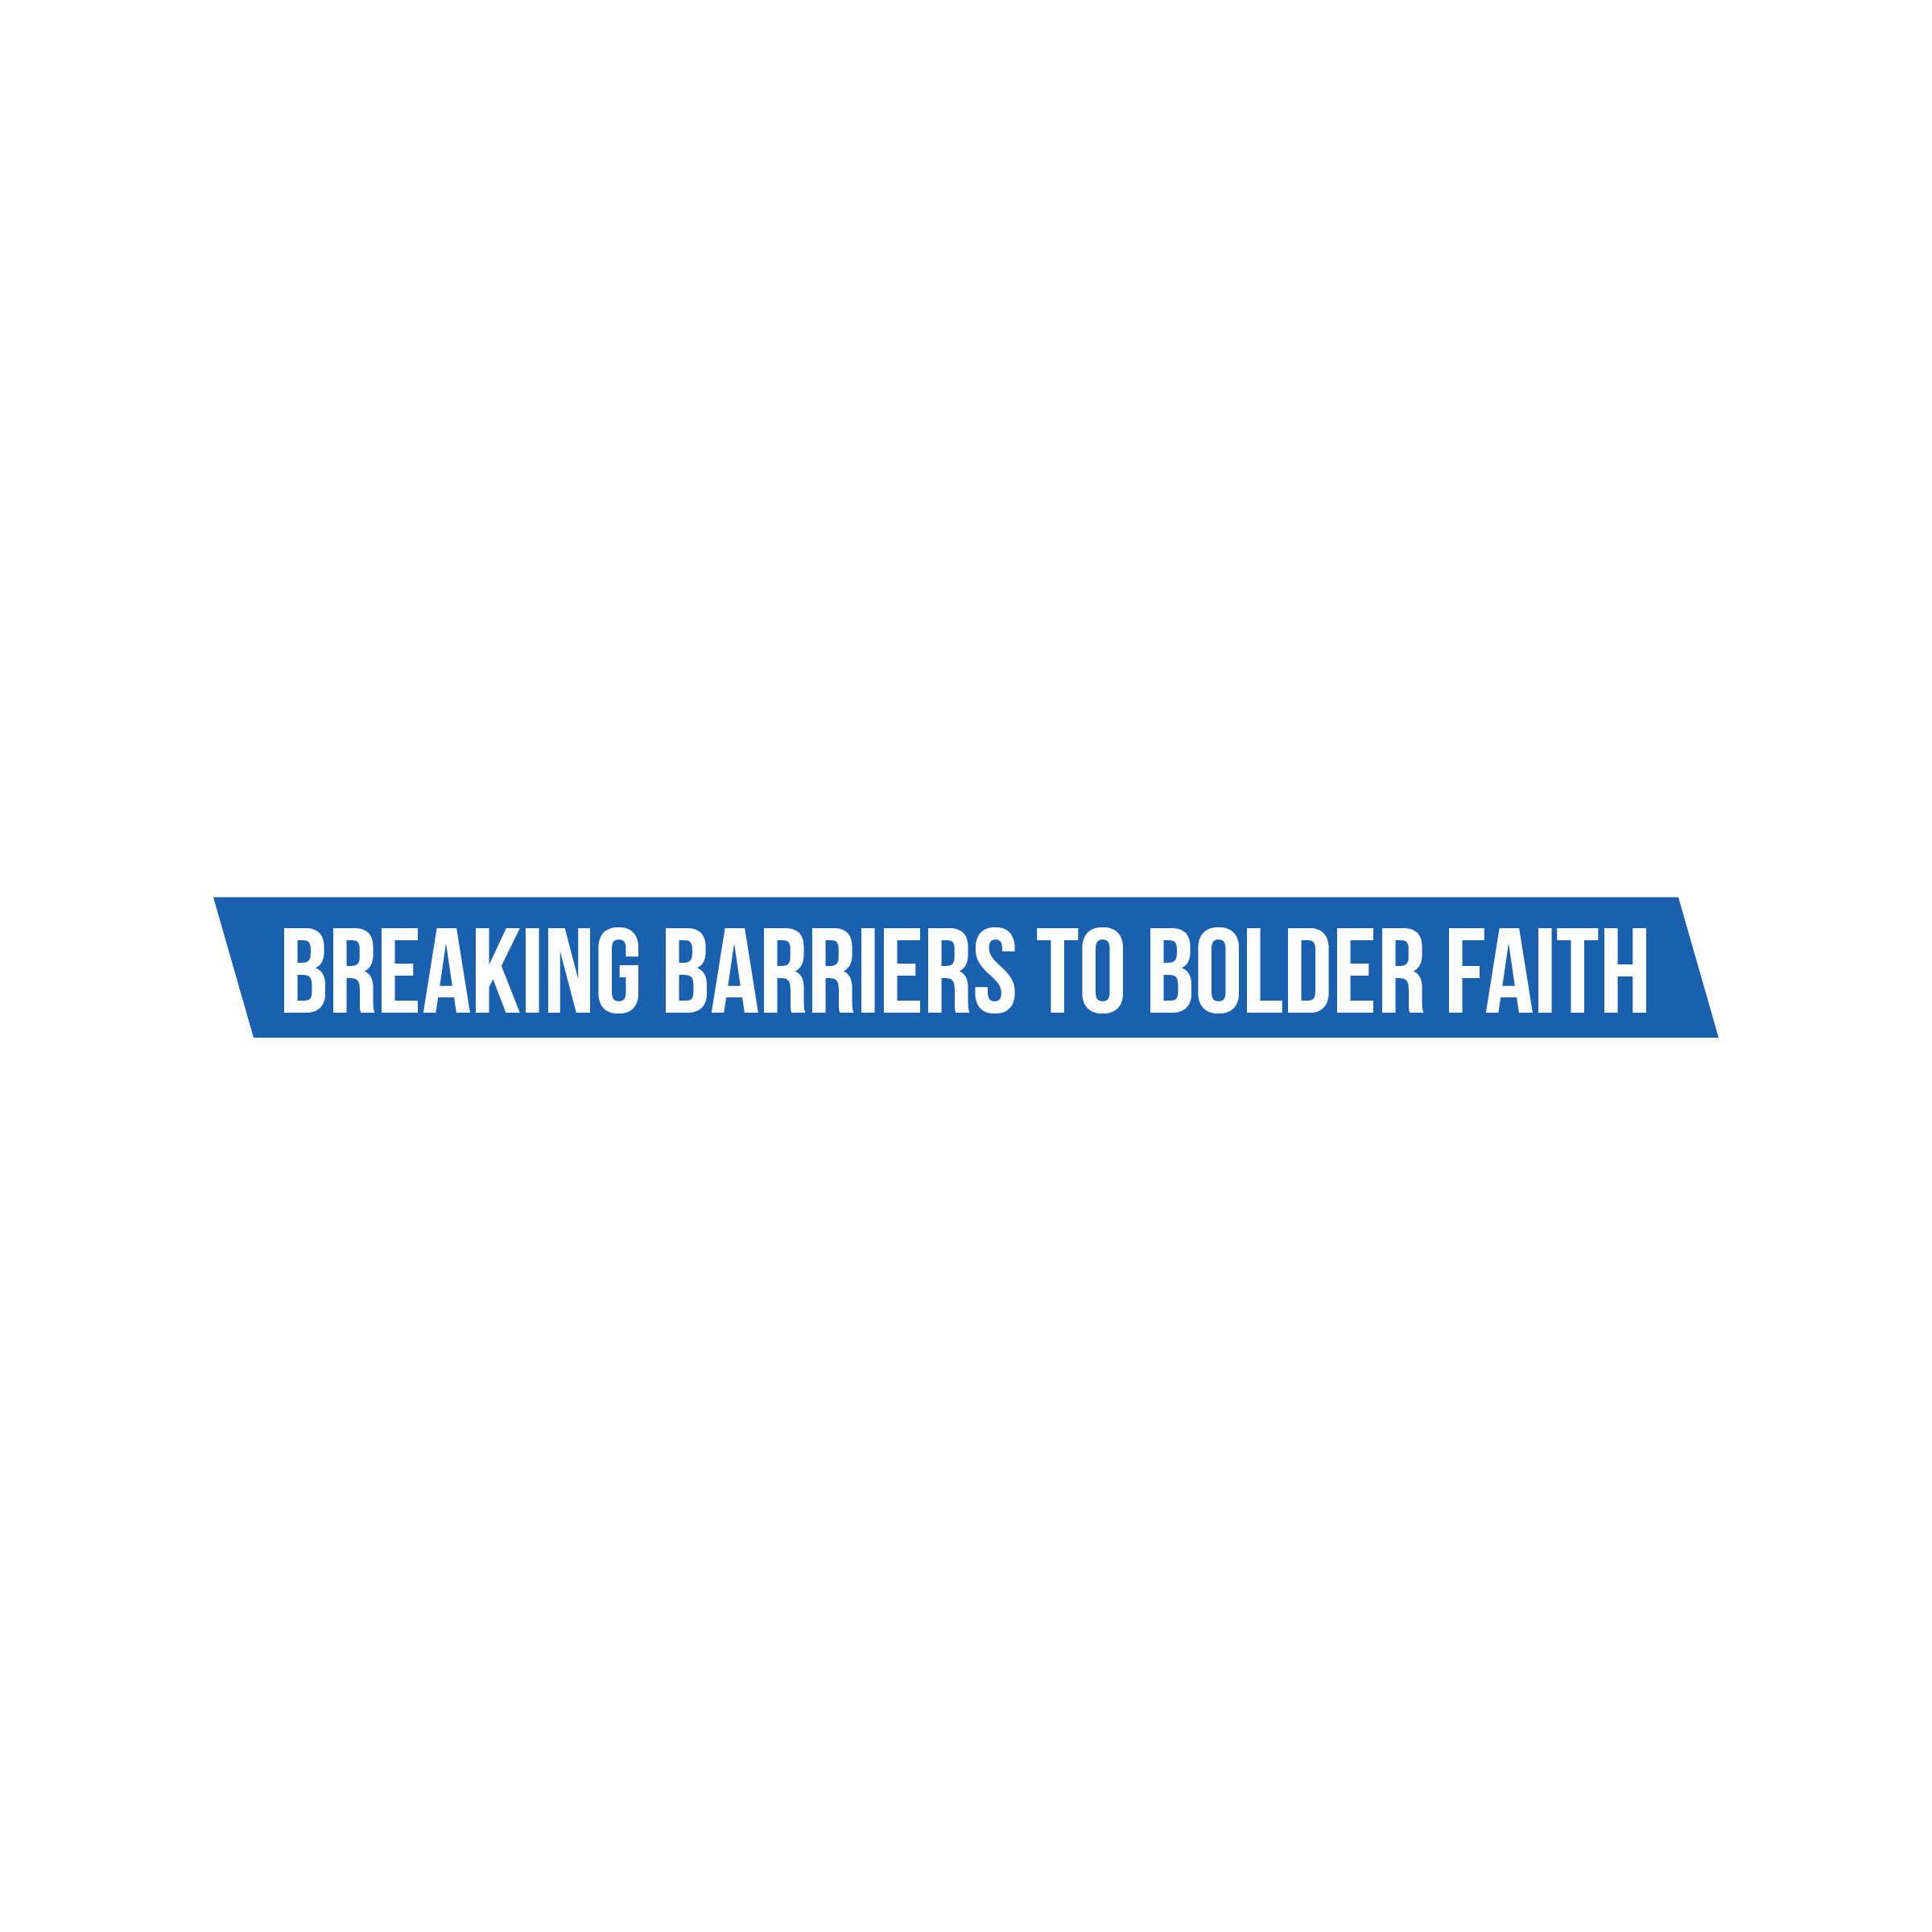 Breaking Barriers Bar.png